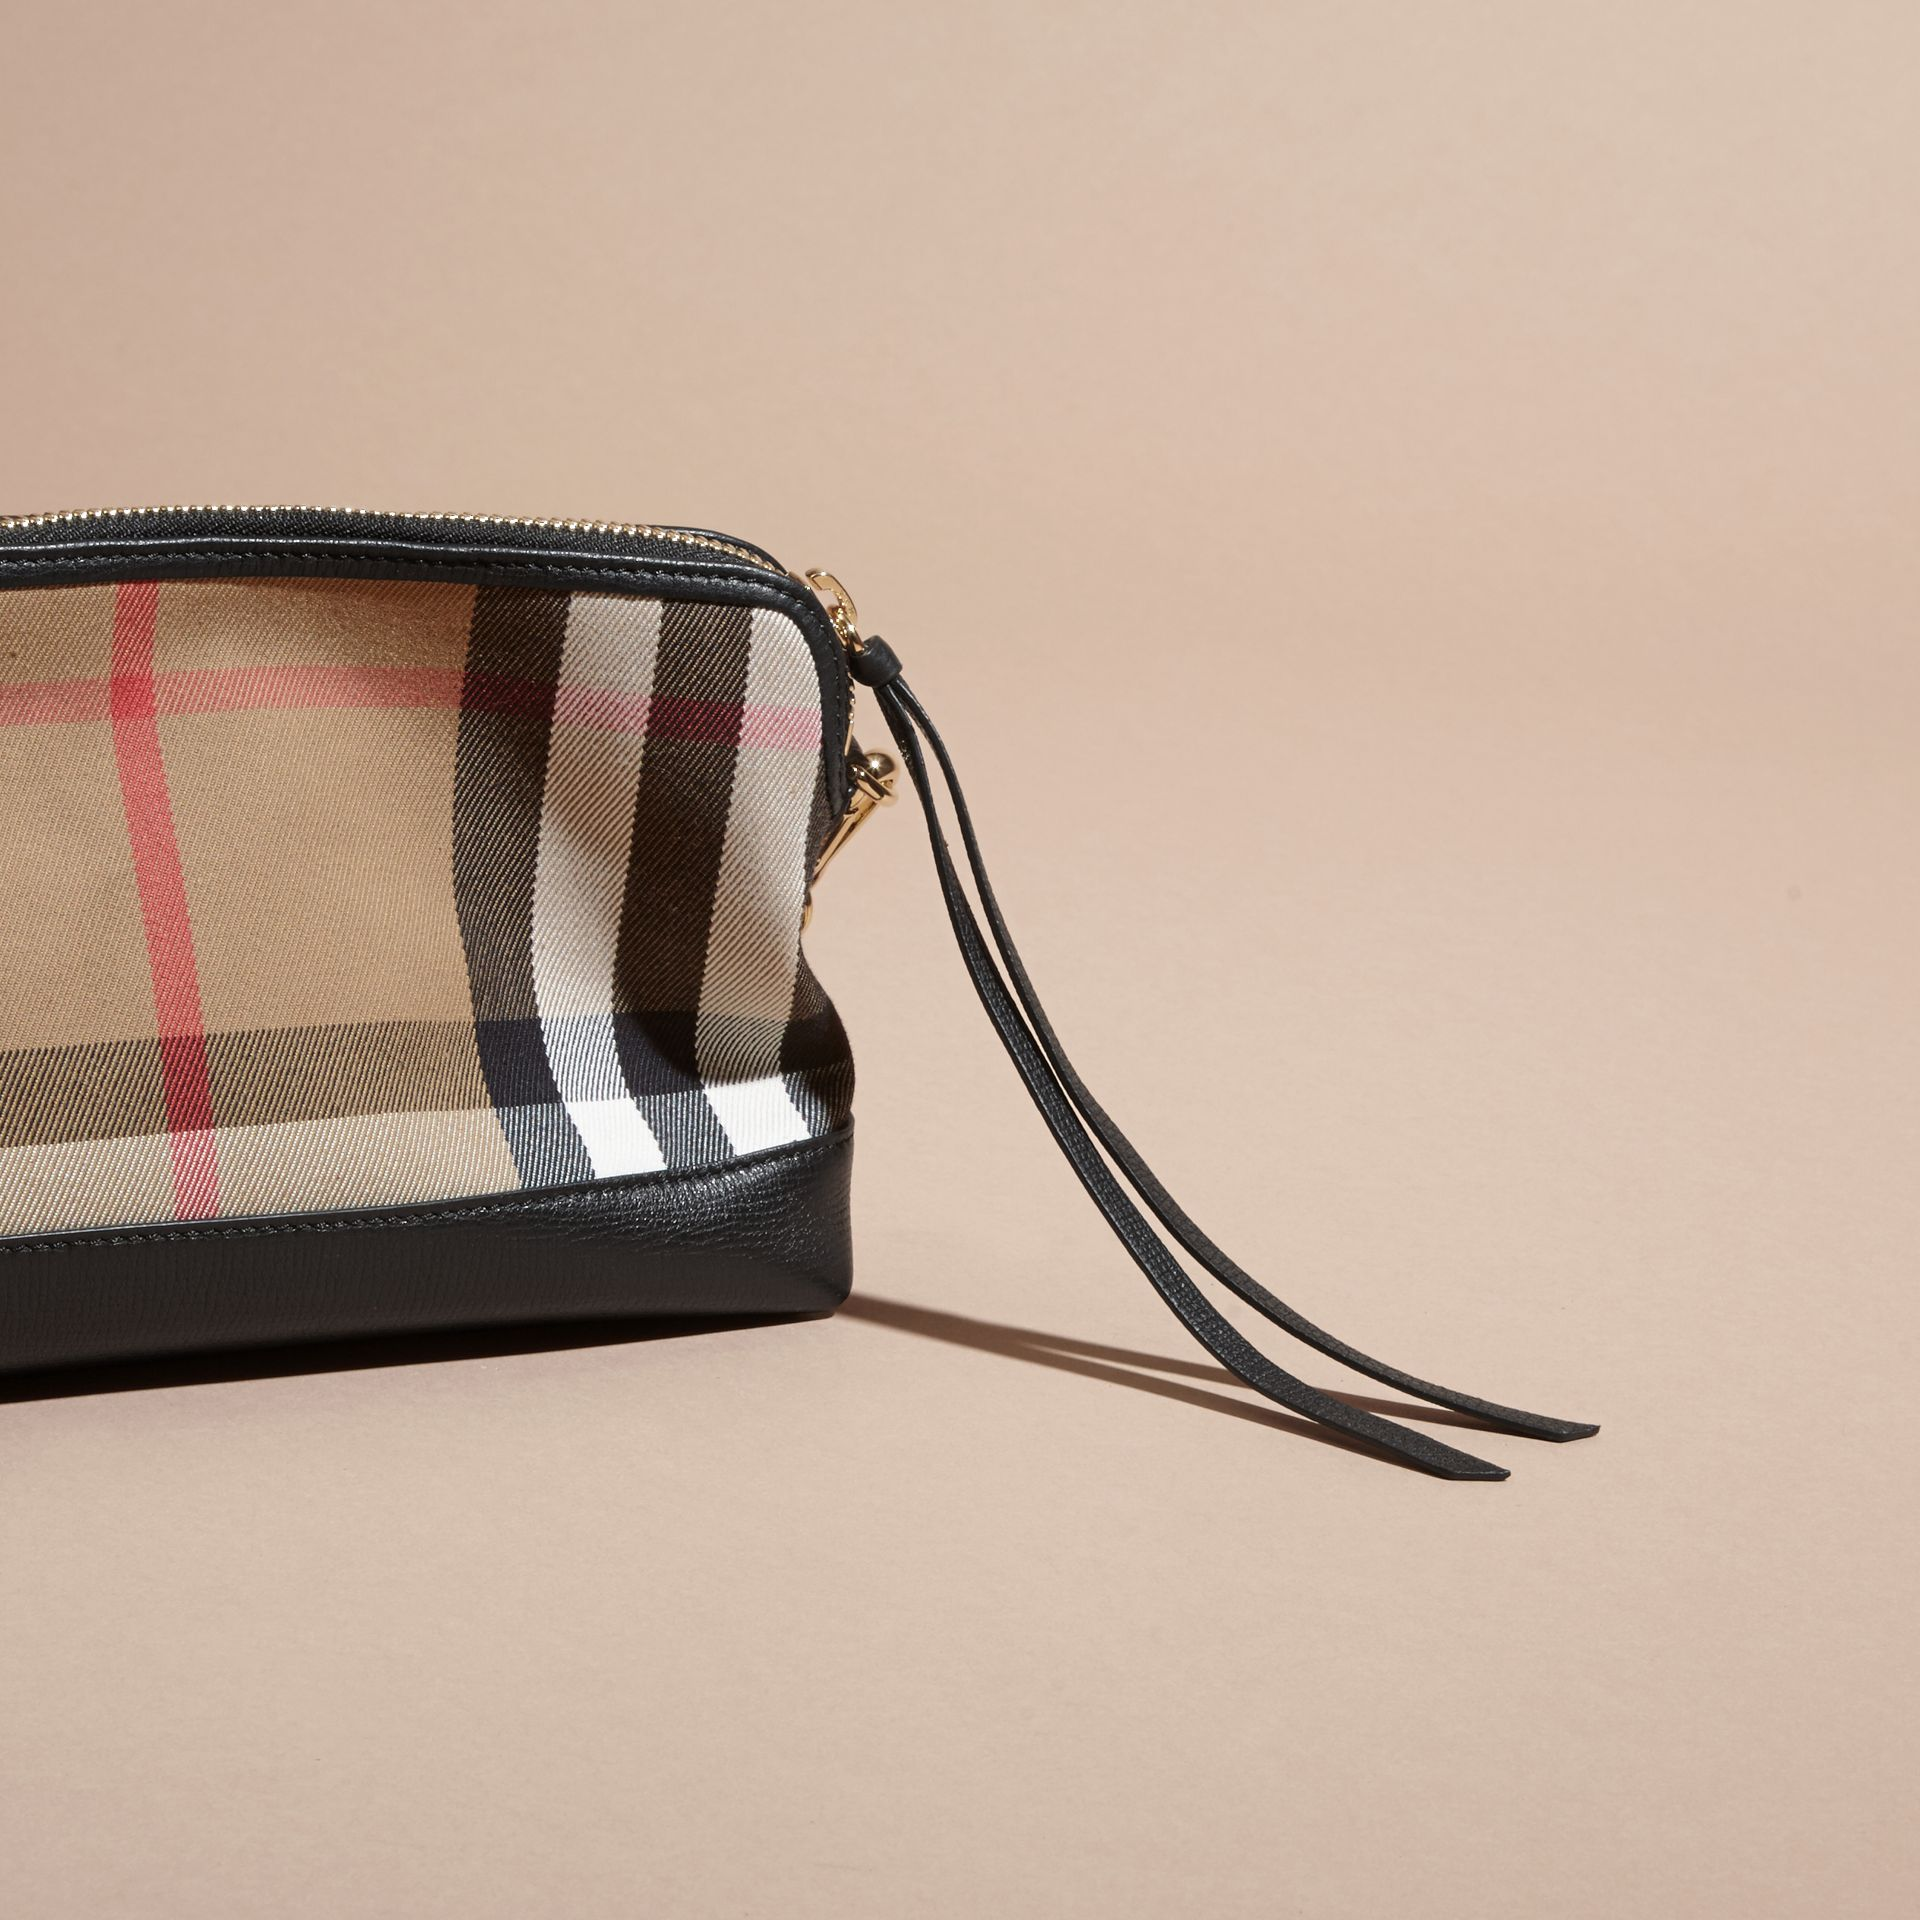 House Check and Leather Clutch Bag in Black - Women | Burberry - gallery image 5